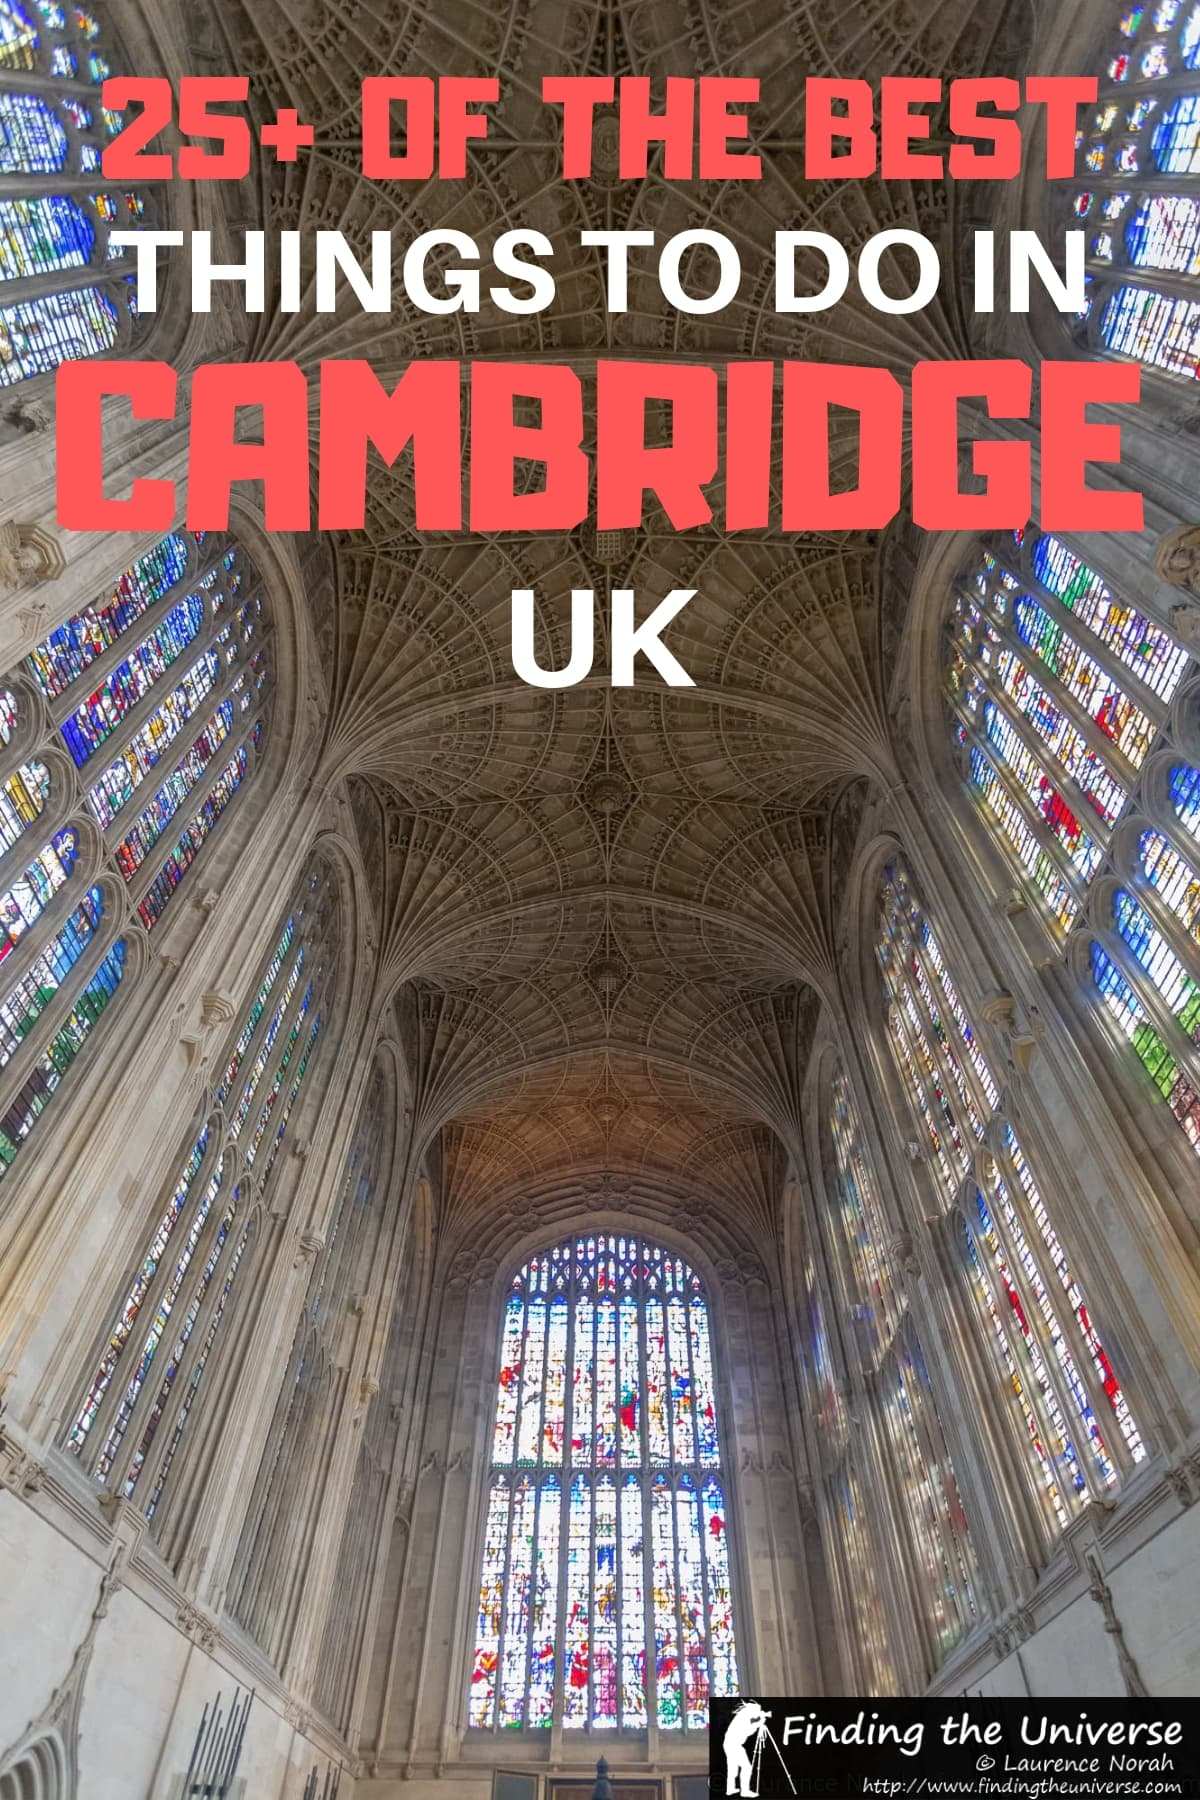 A detailed guide to things to do in Cambridge, including visiting Cambridge Colleges, punting, museums and more! Also has tips on getting here, where to stay and more! #travel #uk #cambridge